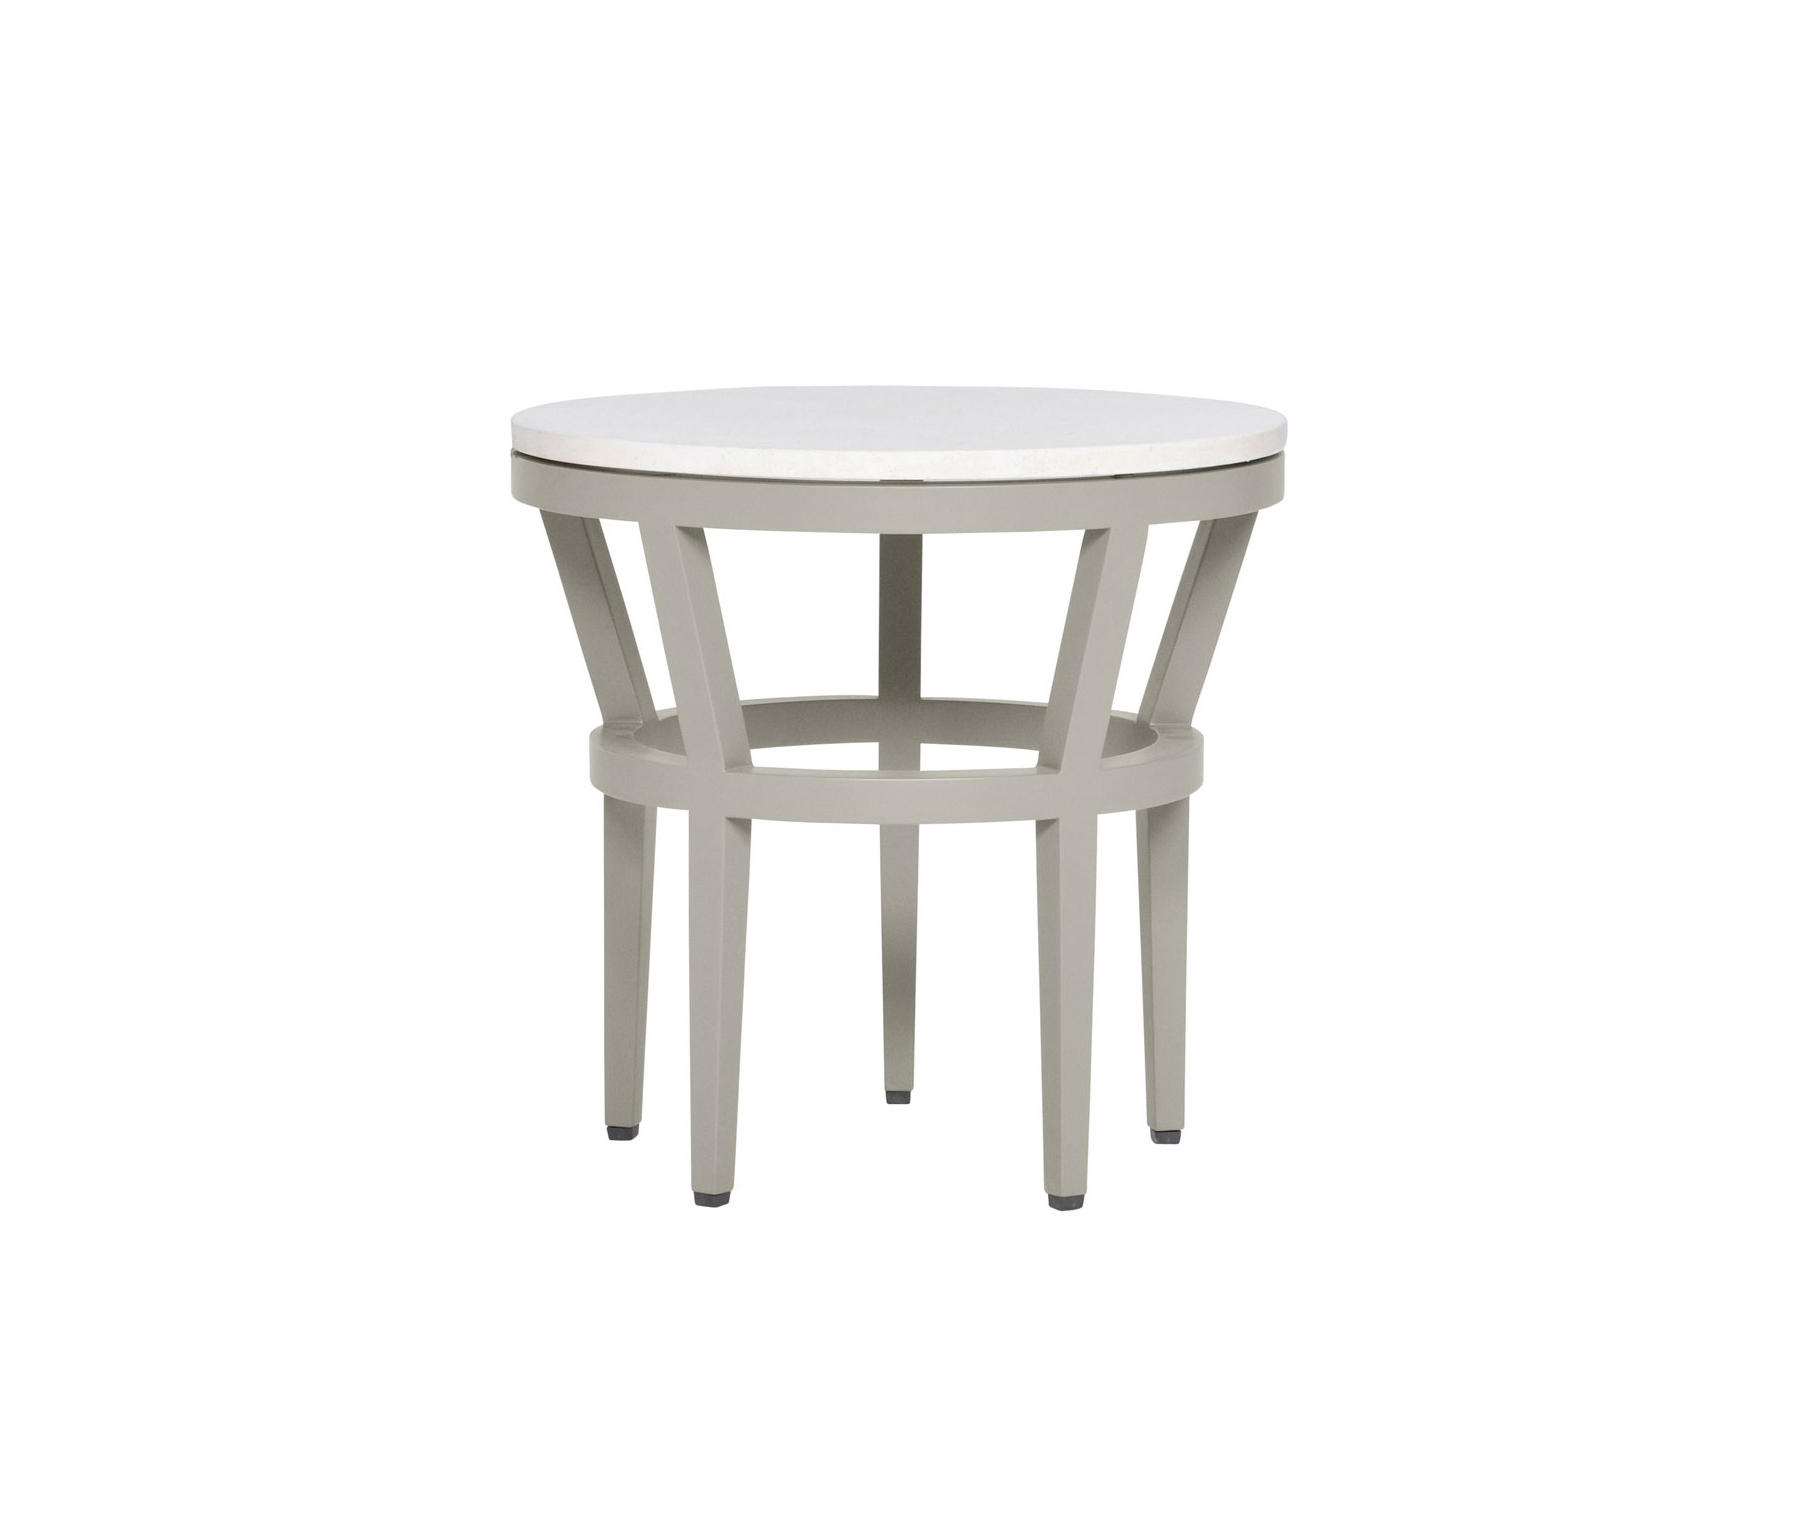 Slant Stone Top Side Table Round 51 Side Tables From